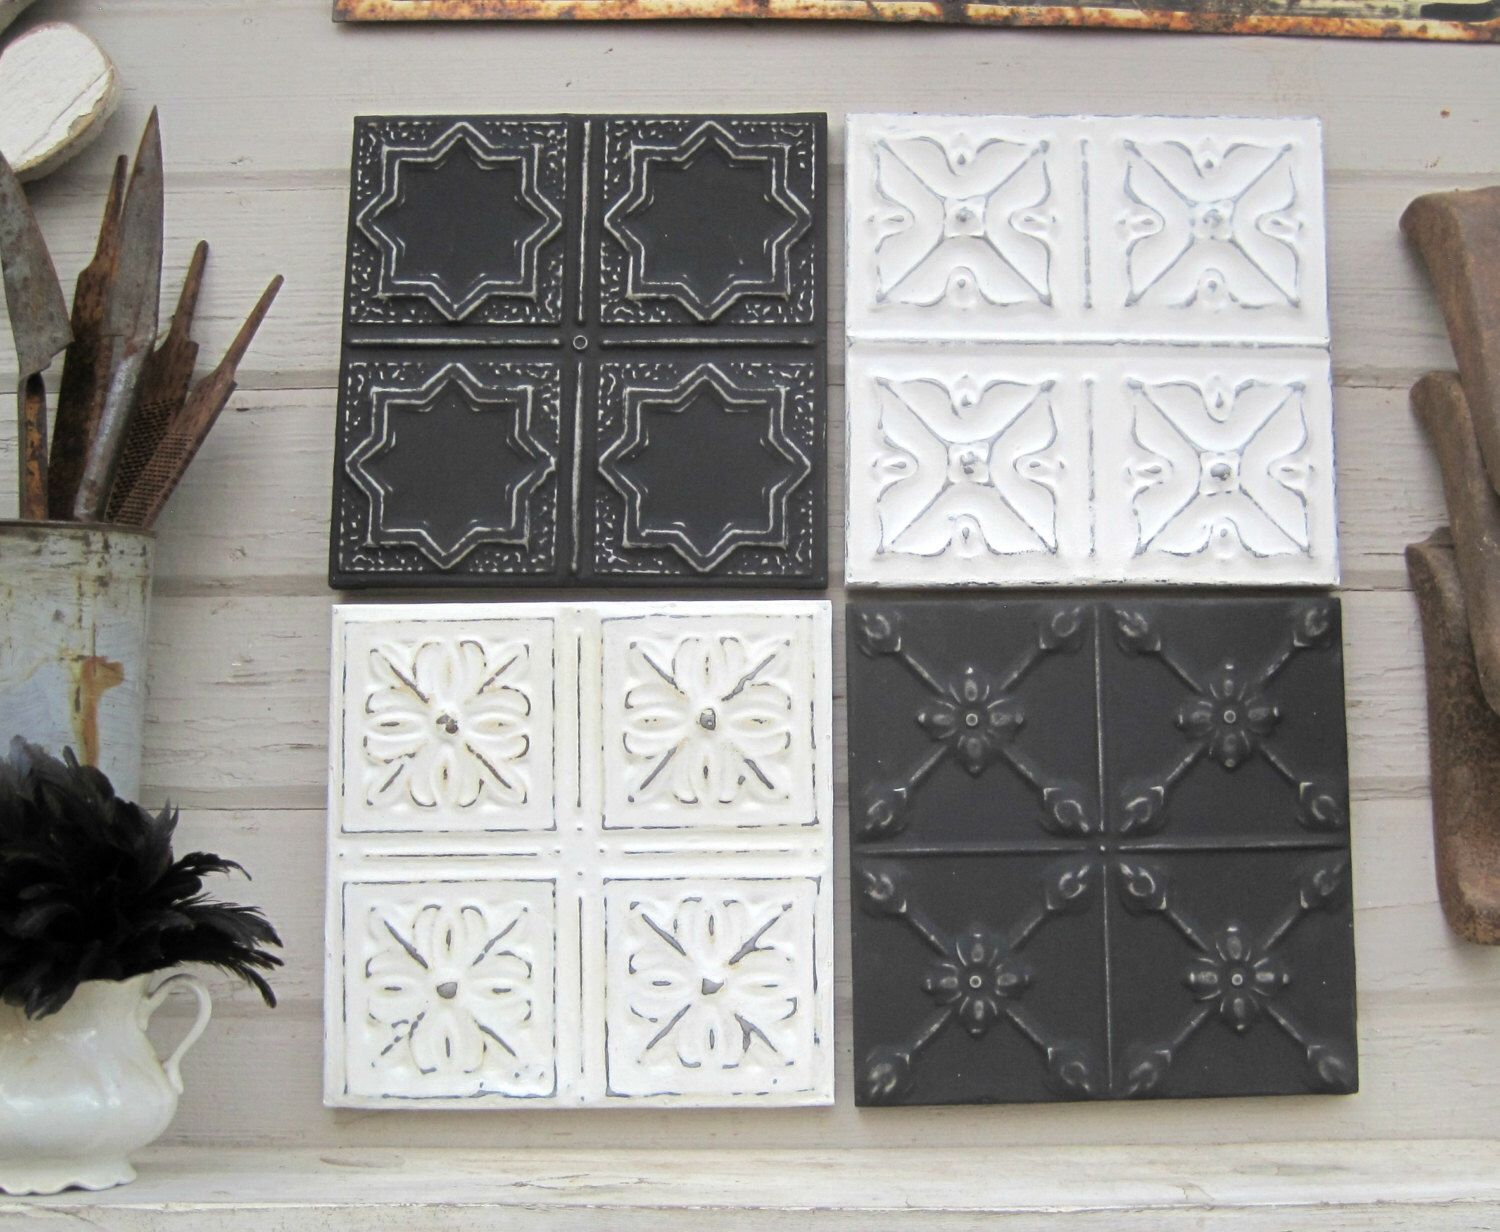 Tin Ceiling Tiles 4 12 X 12 Framed Tiles Vintage Metal Decor Black And White Industrial Pressed Tin Tiles Ar Tin Ceiling Ceiling Tiles Tin Ceiling Tiles